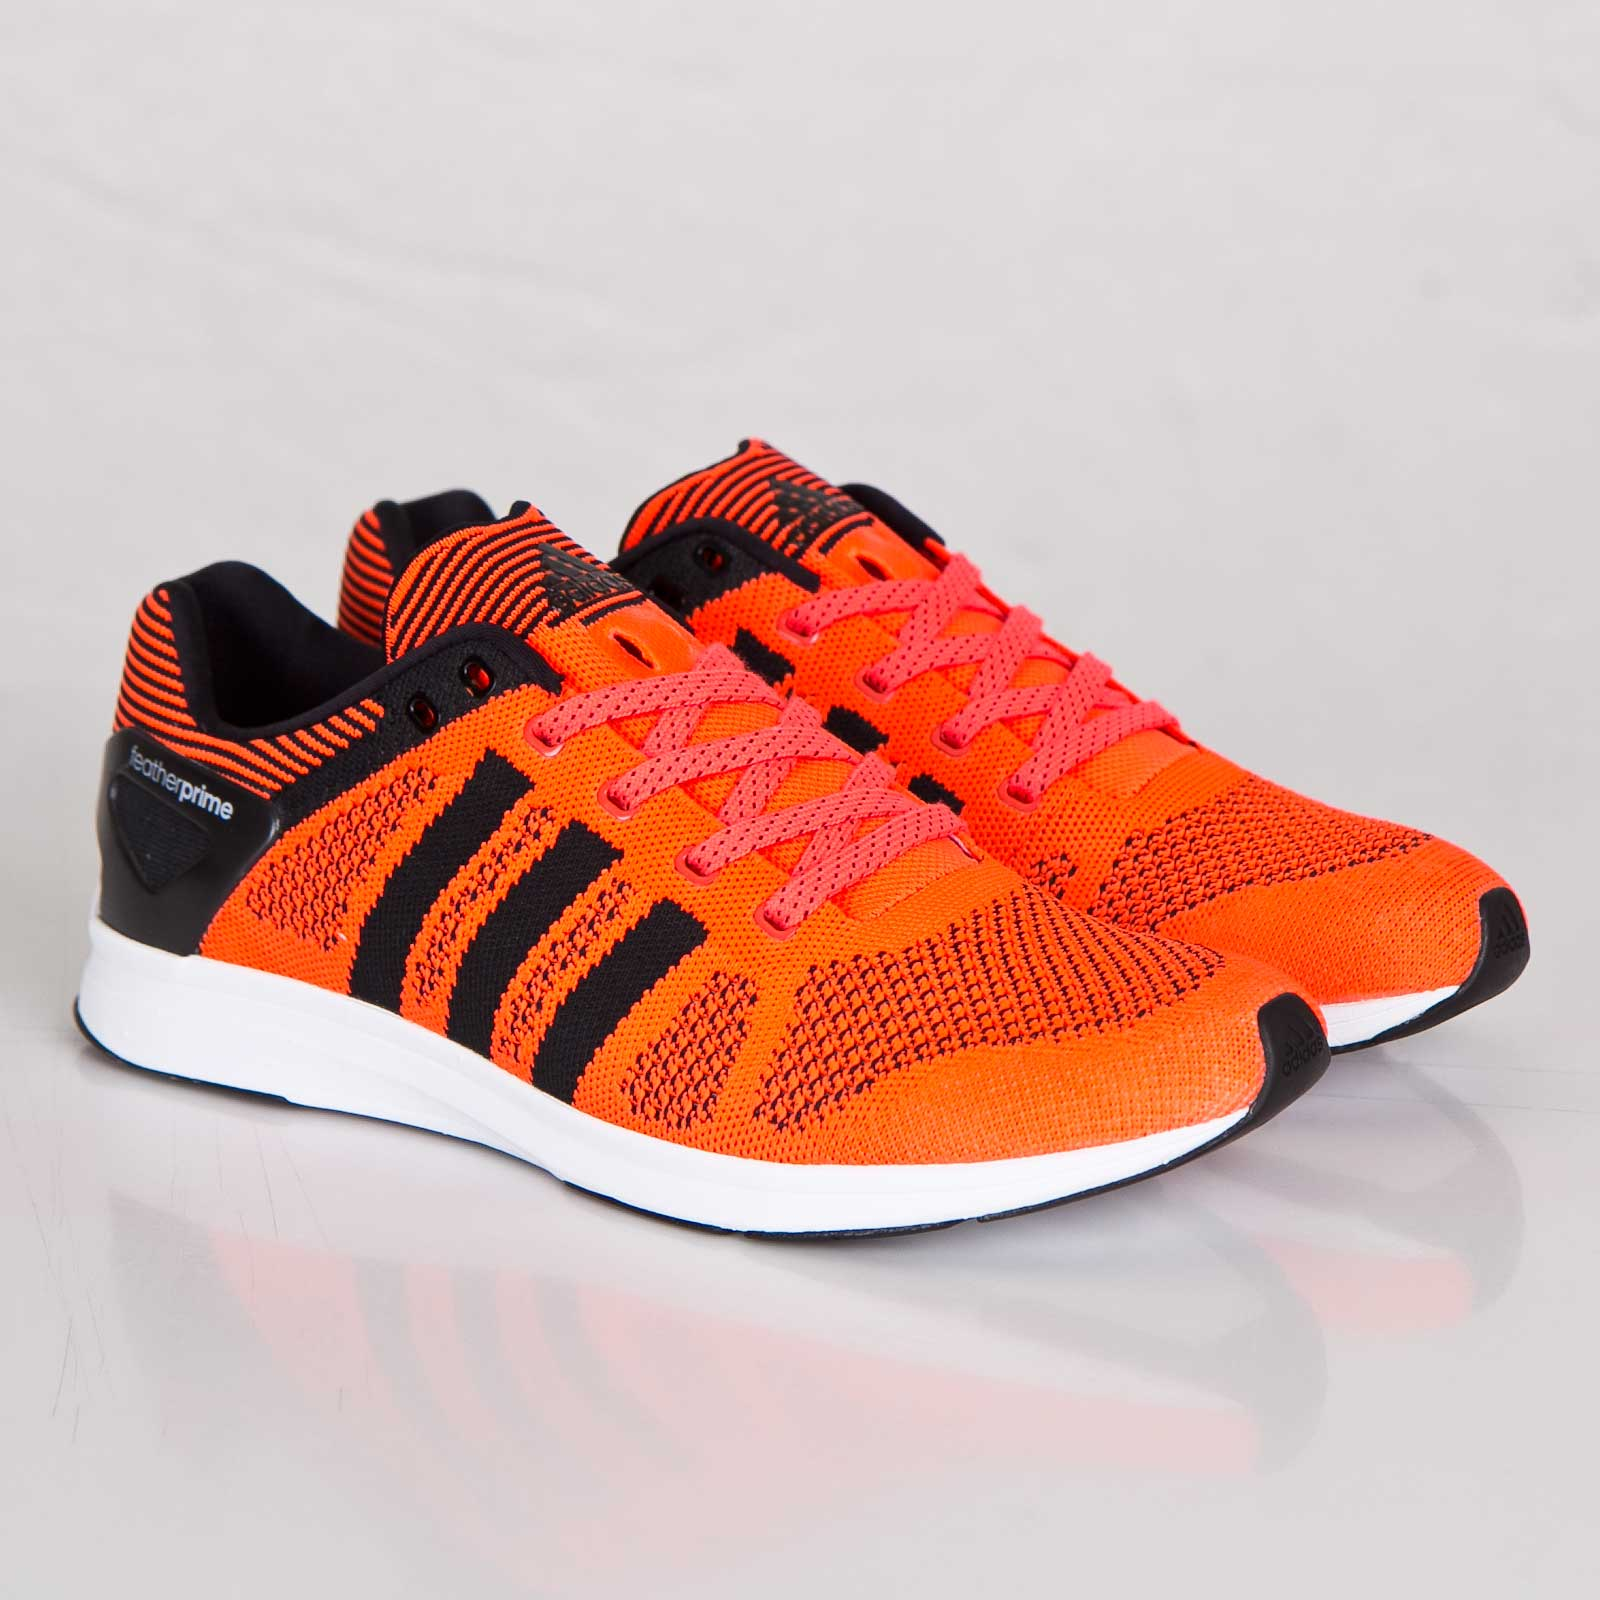 on sale c8ac0 502ac adidas adizero feather prime M